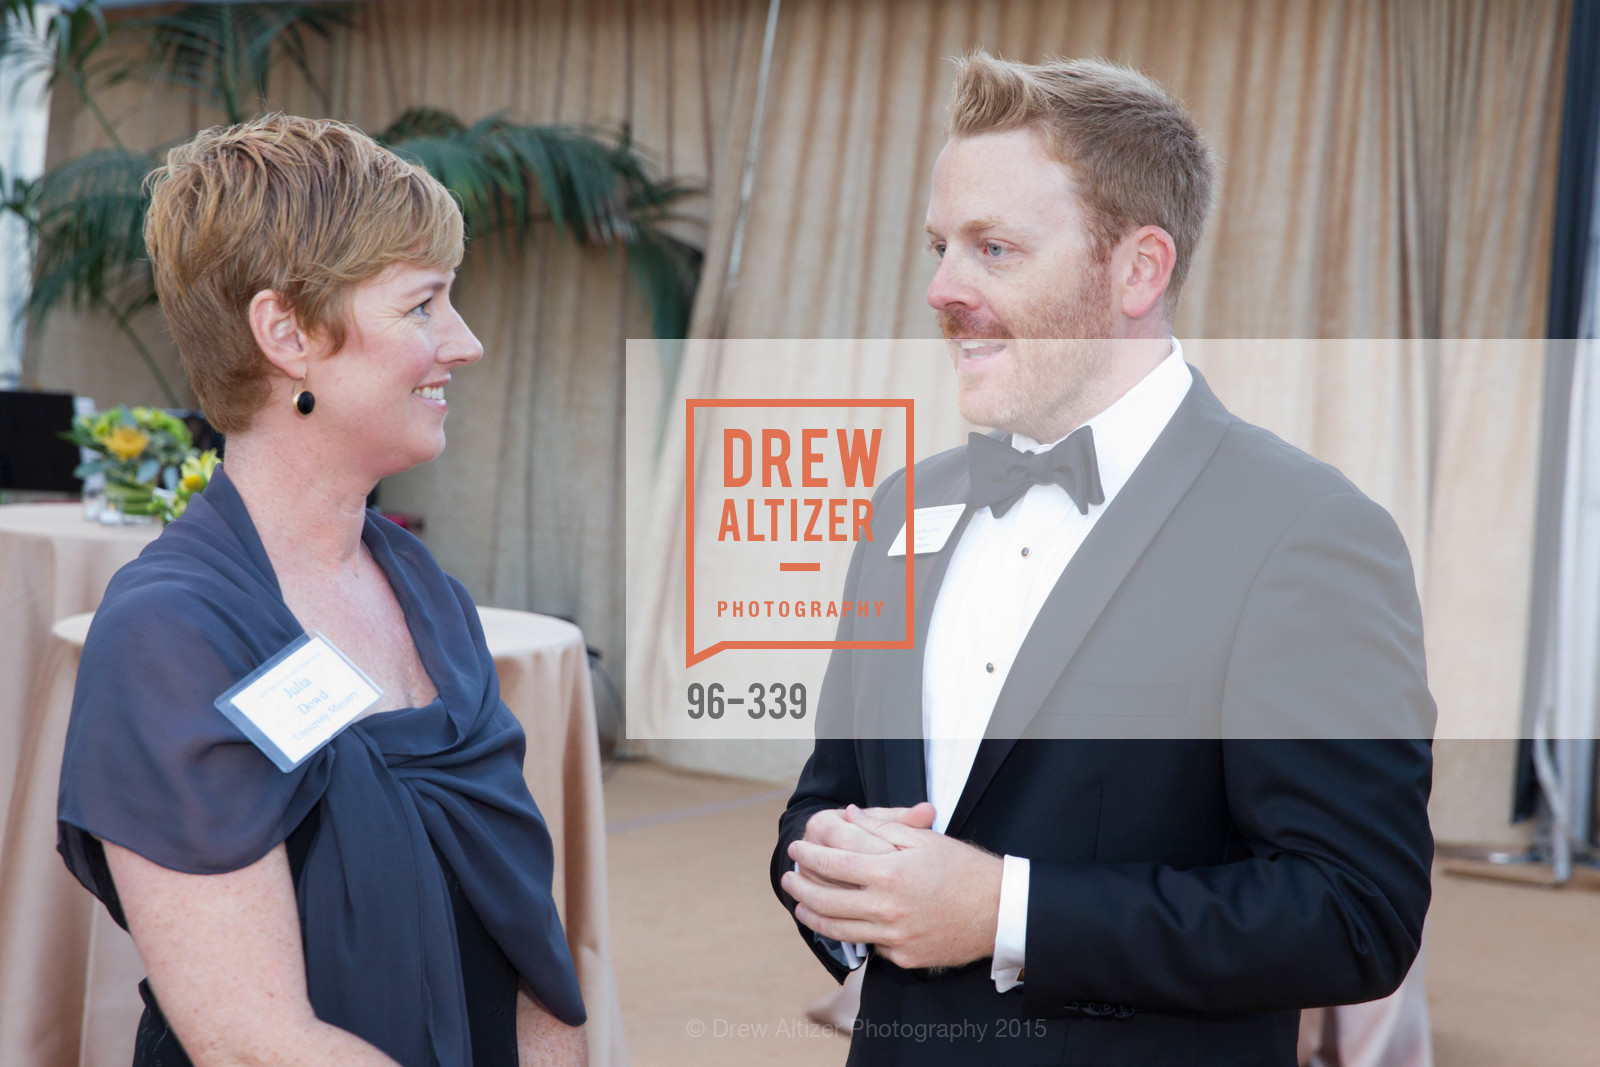 Julia Dowd, Jay Dillon, University of San Francisco Alumni Awards Gala 2015, University of San Francisco, October 2nd, 2015,Drew Altizer, Drew Altizer Photography, full-service event agency, private events, San Francisco photographer, photographer California